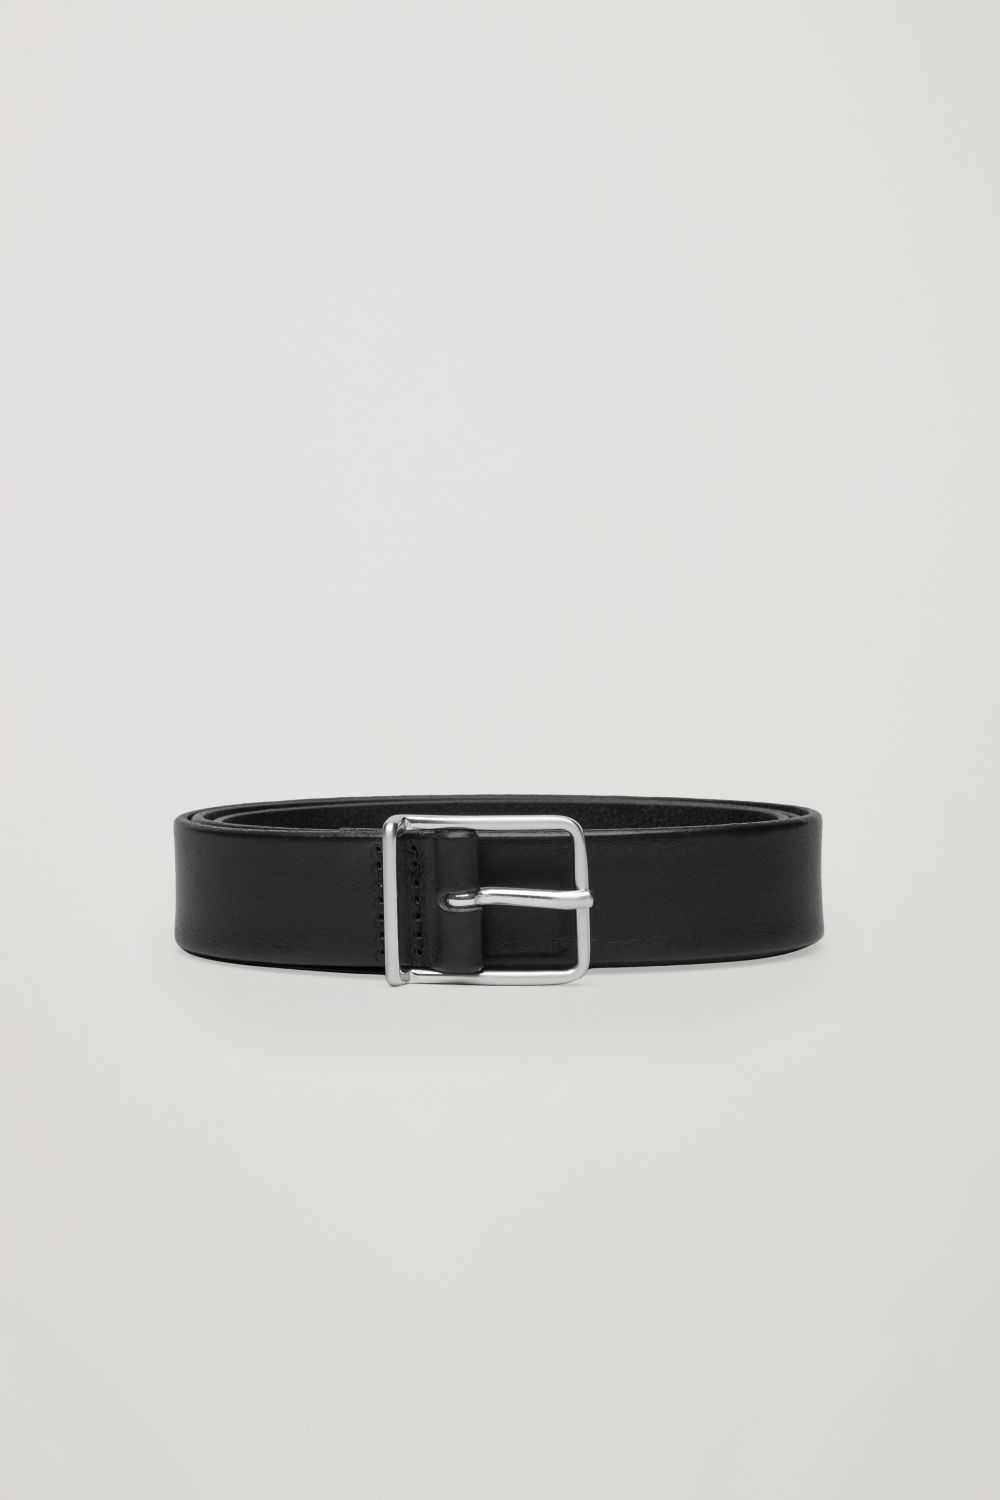 ROUND-BUCKLED LEATHER BELT